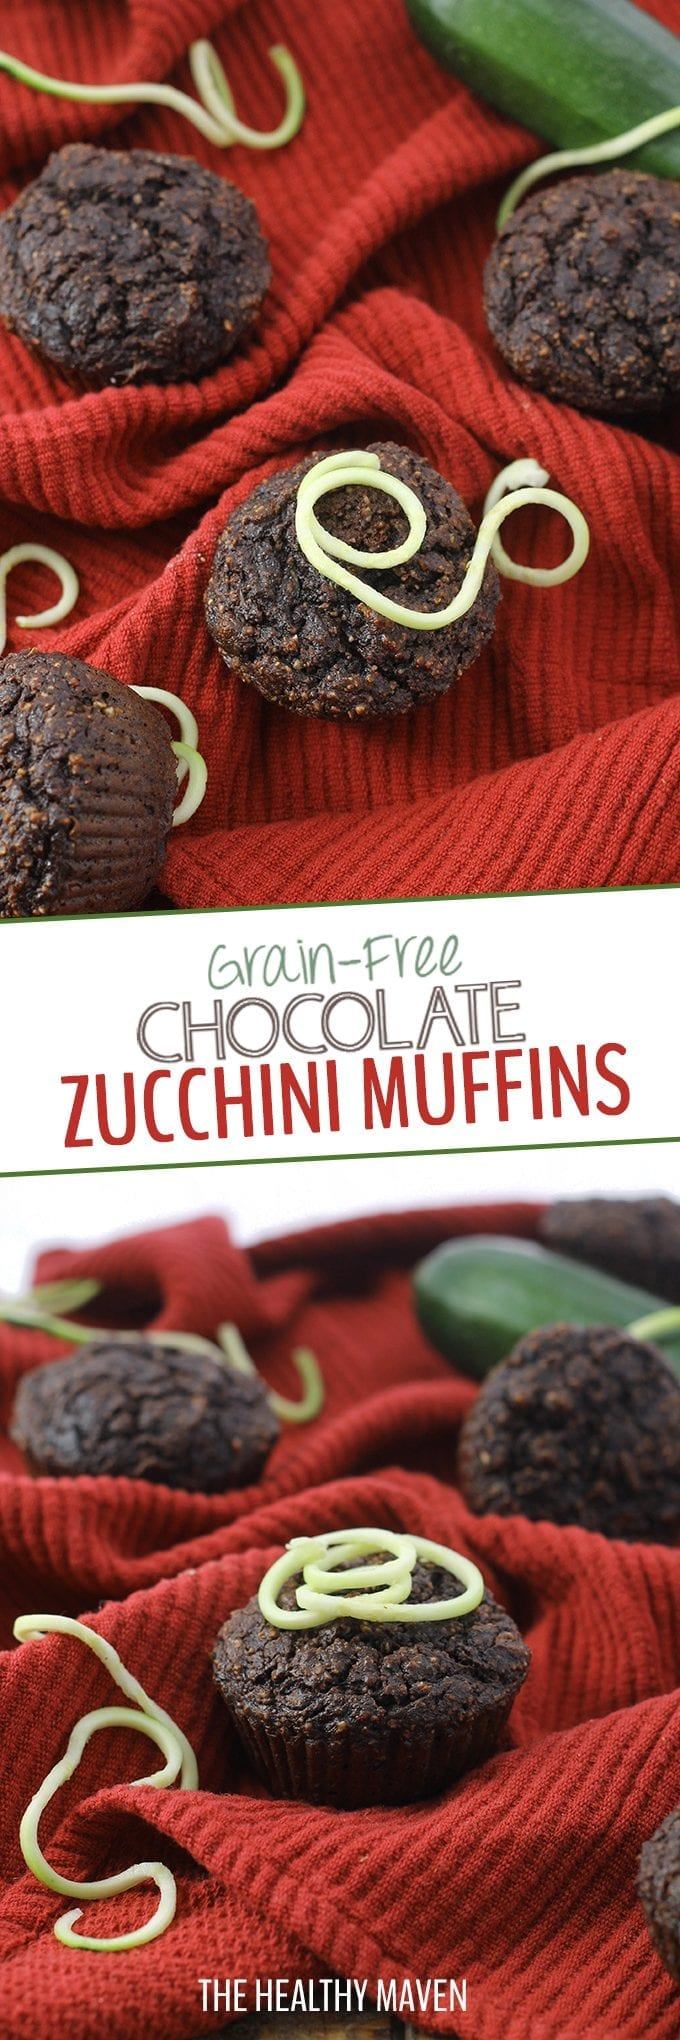 As a healthy paleo breakfast or snack, these Grain-Free Chocolate Zucchini Muffins will become a summer staple all season long! Enjoy fresh or freeze for later.